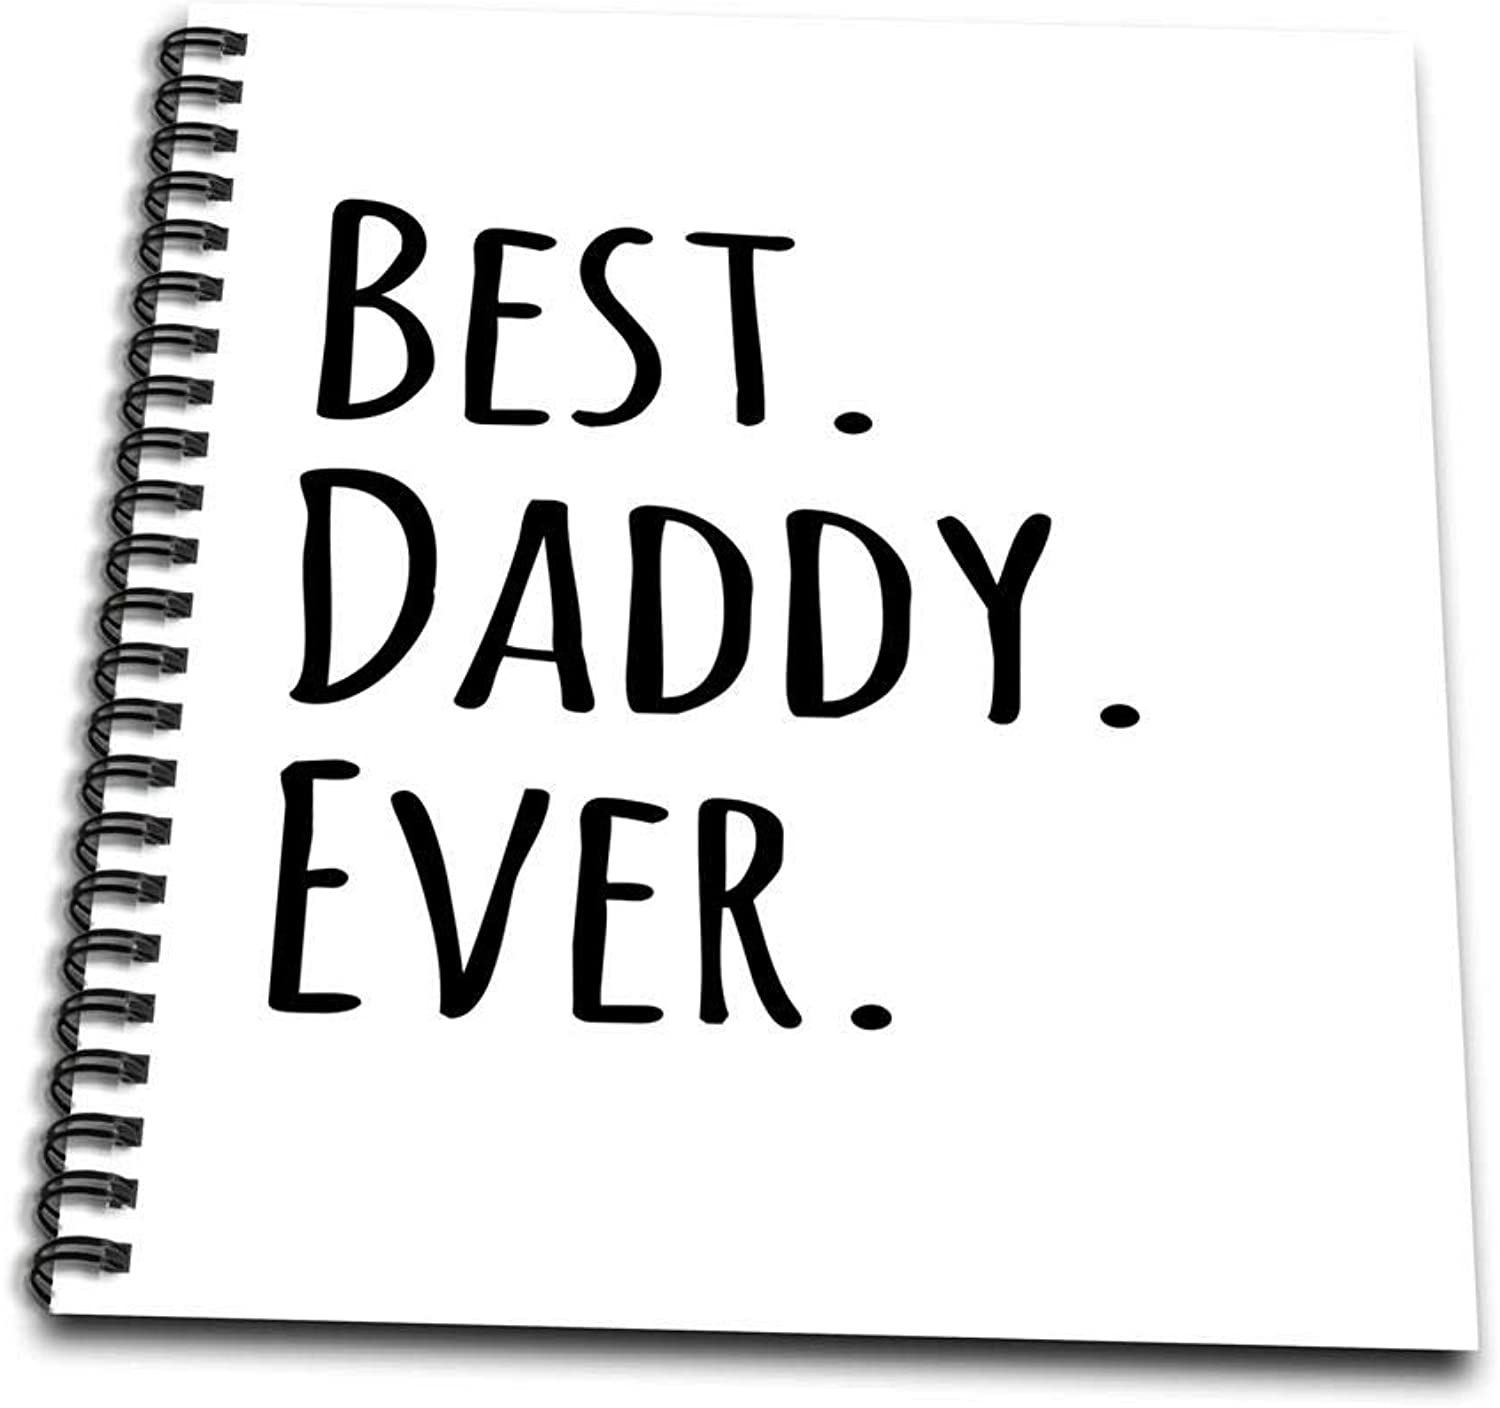 3dpink db_203243_1 Best Daddy Ever Gifts for Fathers Fathers Day Black Text Drawing Book, 8 by 8